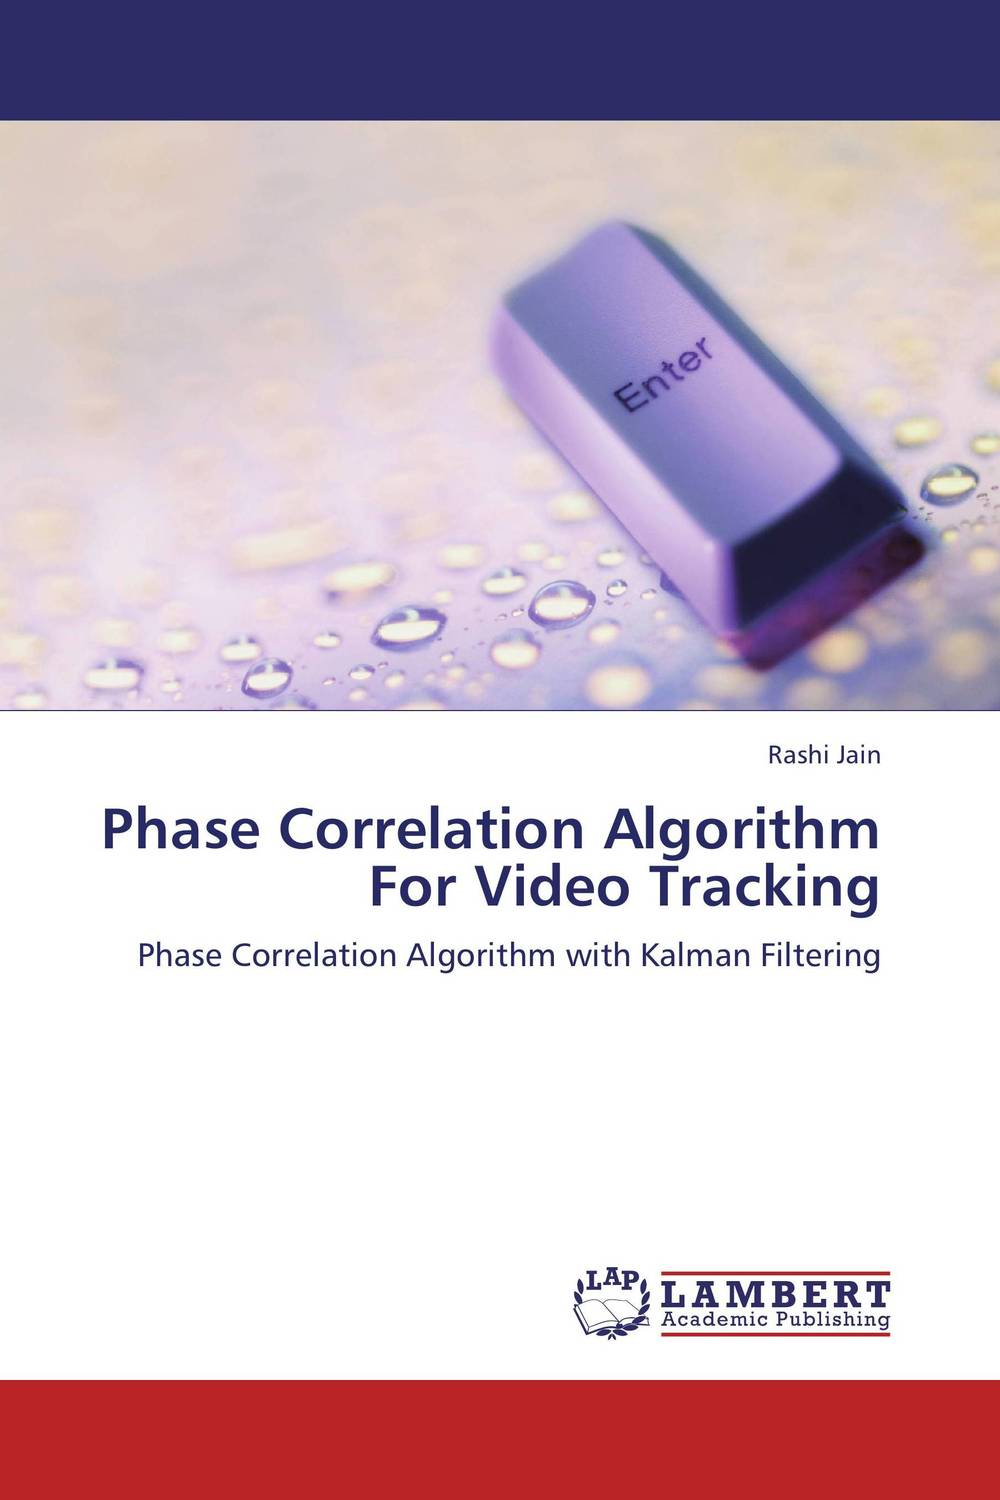 Phase Correlation Algorithm For Video Tracking video object tracking